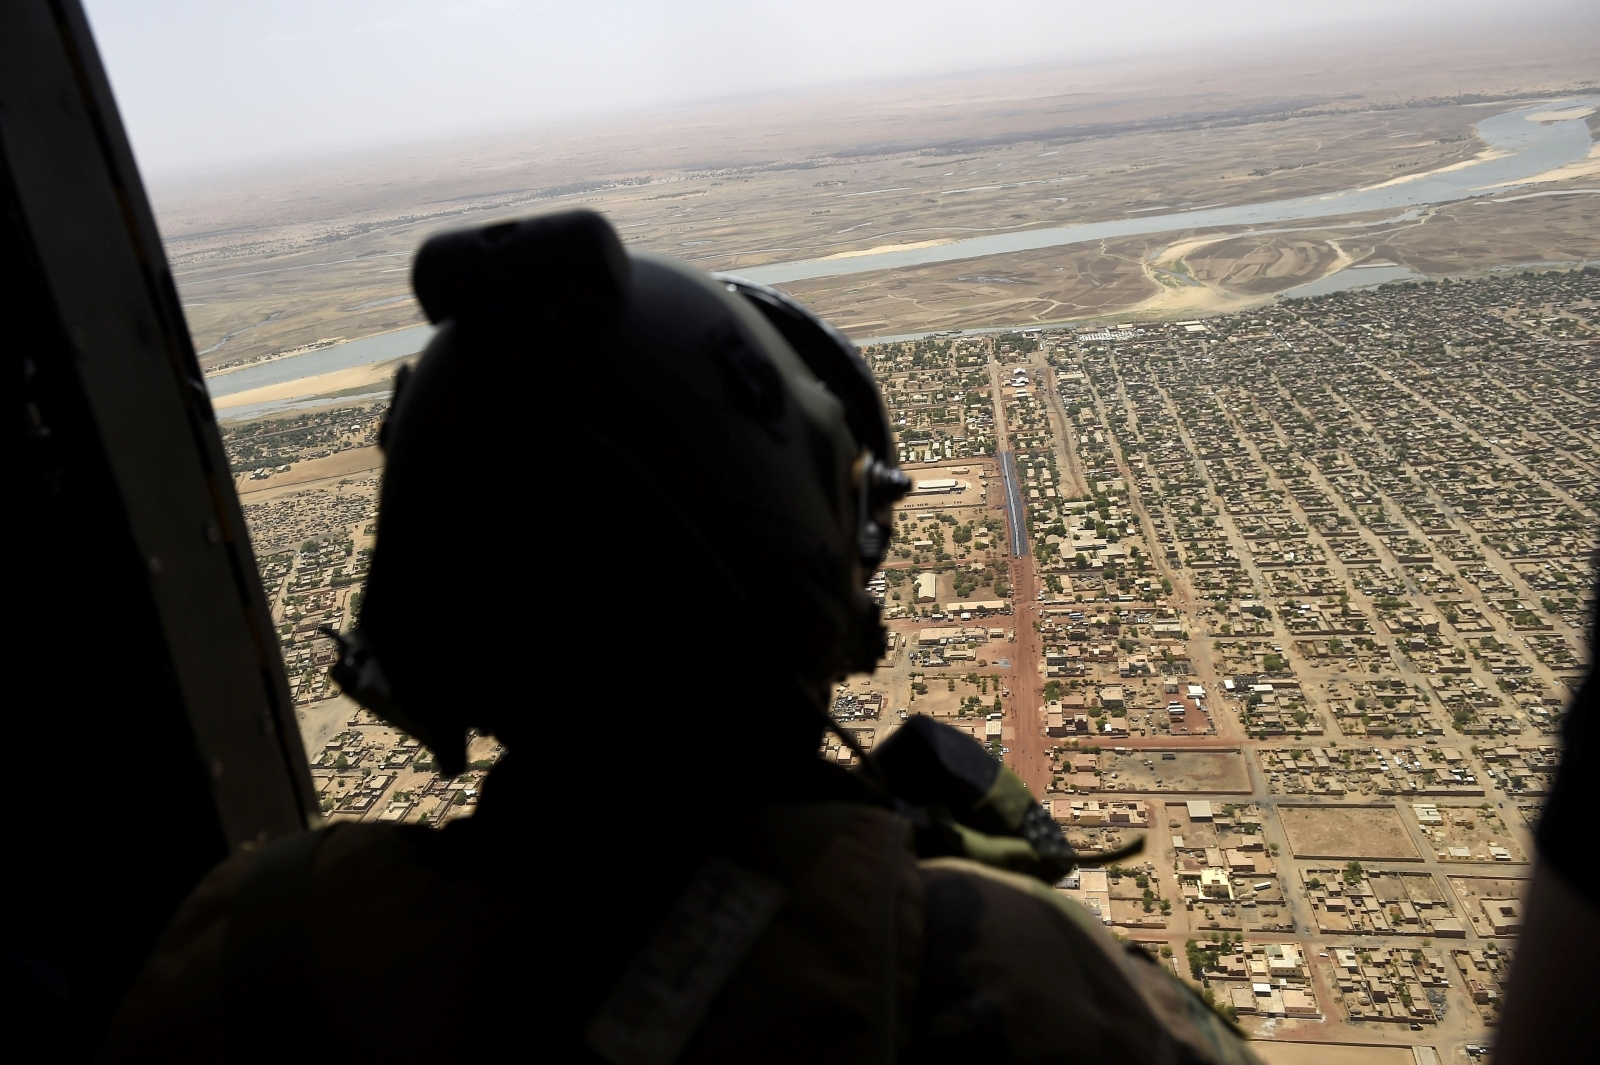 French helicopter crewman above Mali